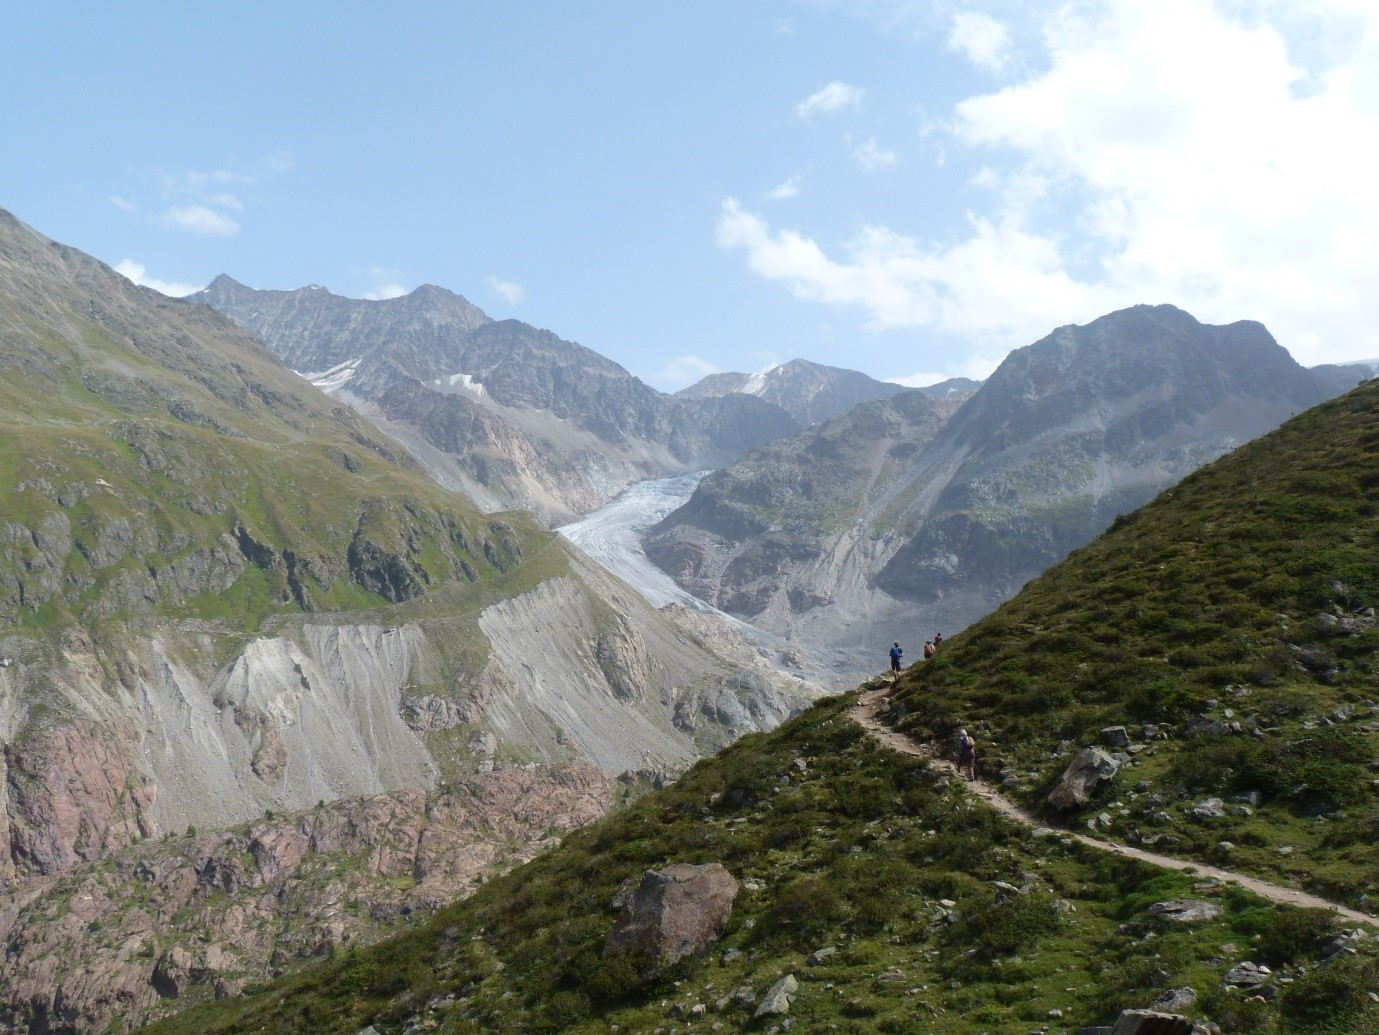 Trail leading to Gepatschferner (in the distance), along the 1850 lateral moraine surface (Image credit: Ciara Fleming).